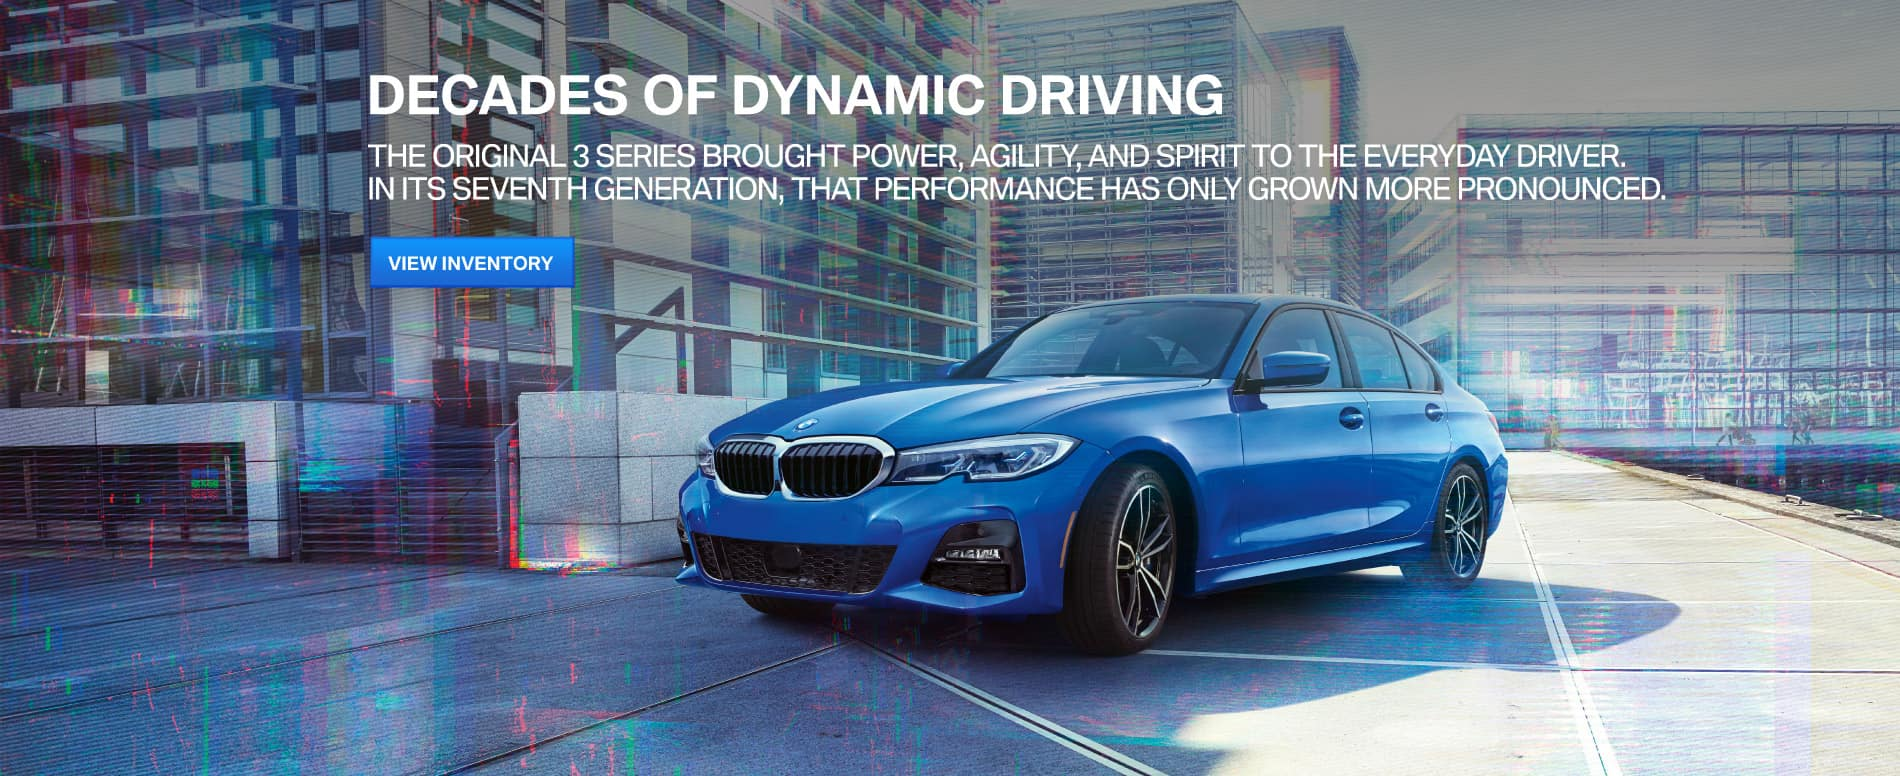 Autobahn BMW | The All New 3 Series Has Arrived!